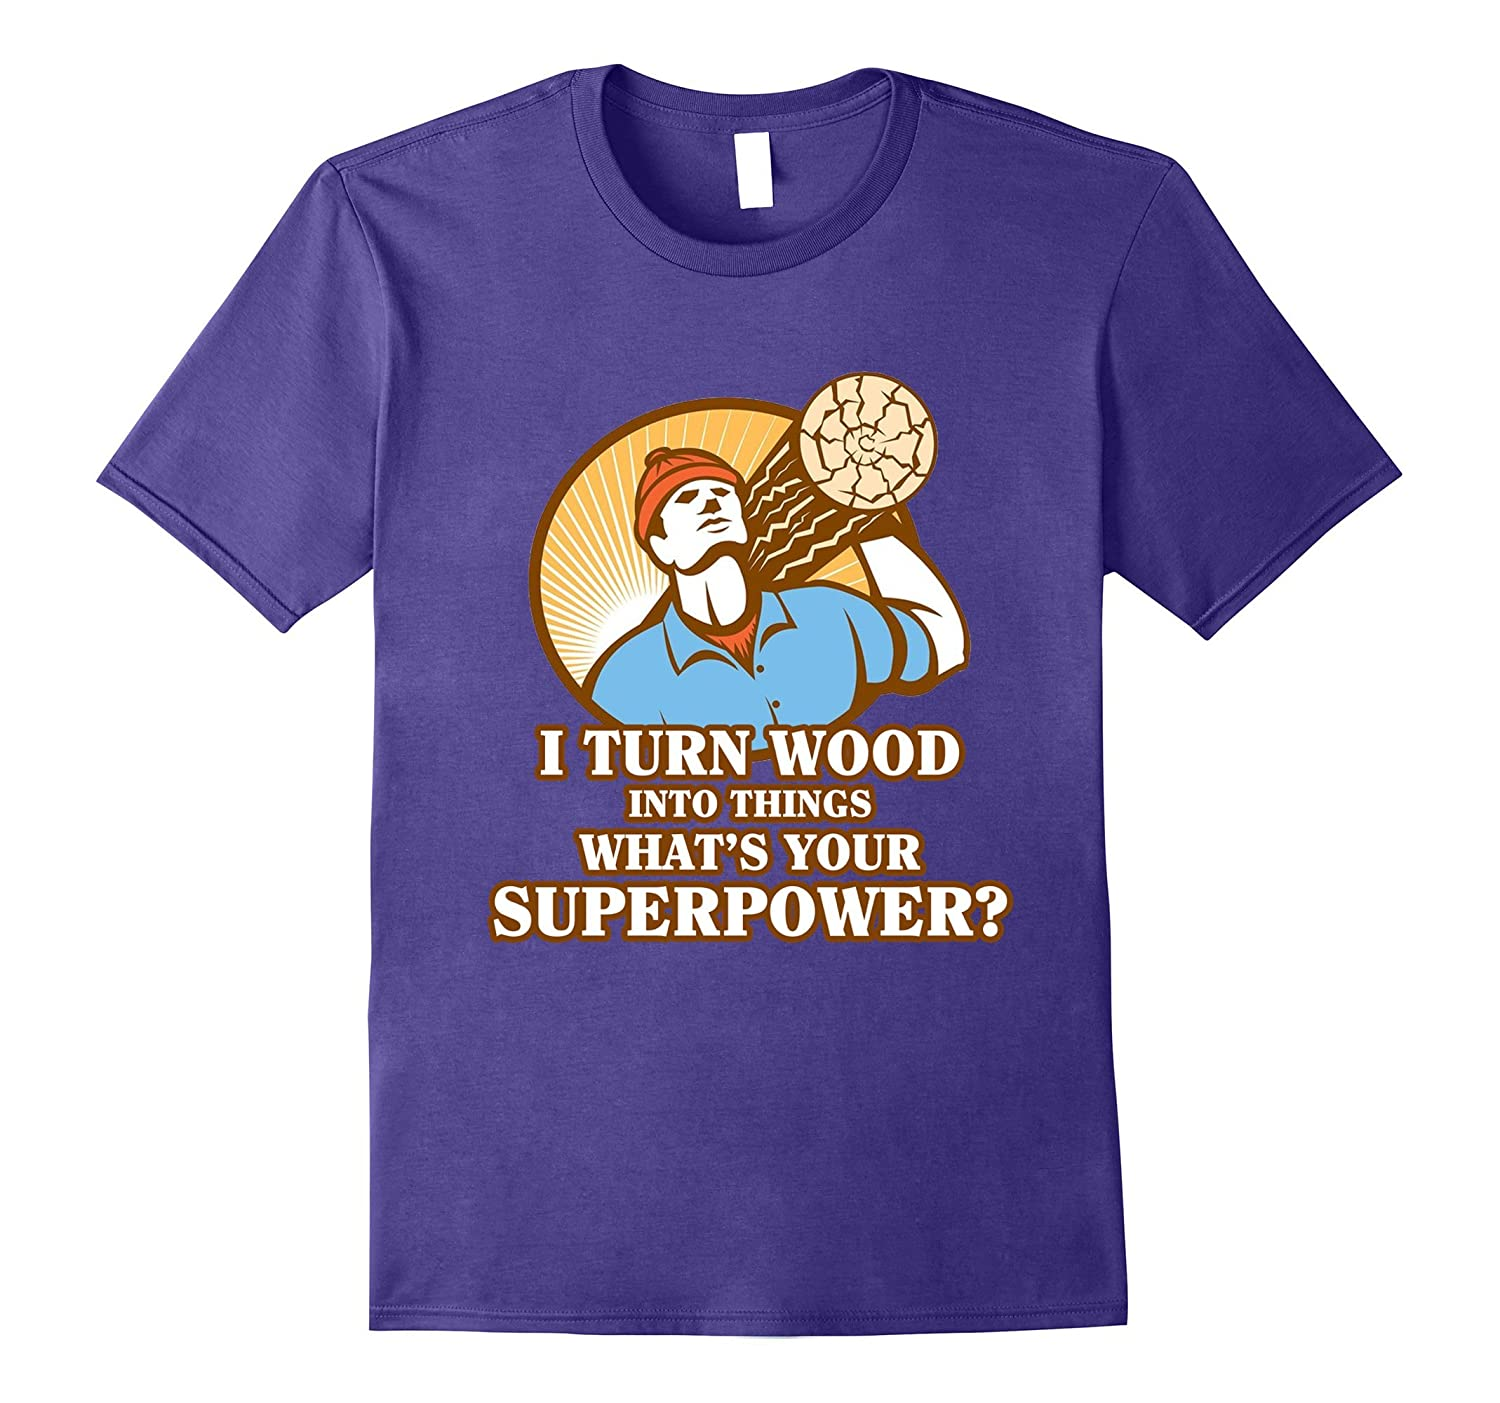 I Turn Wood Into Things Whats Your Superpower? T-Shirt-Vaci